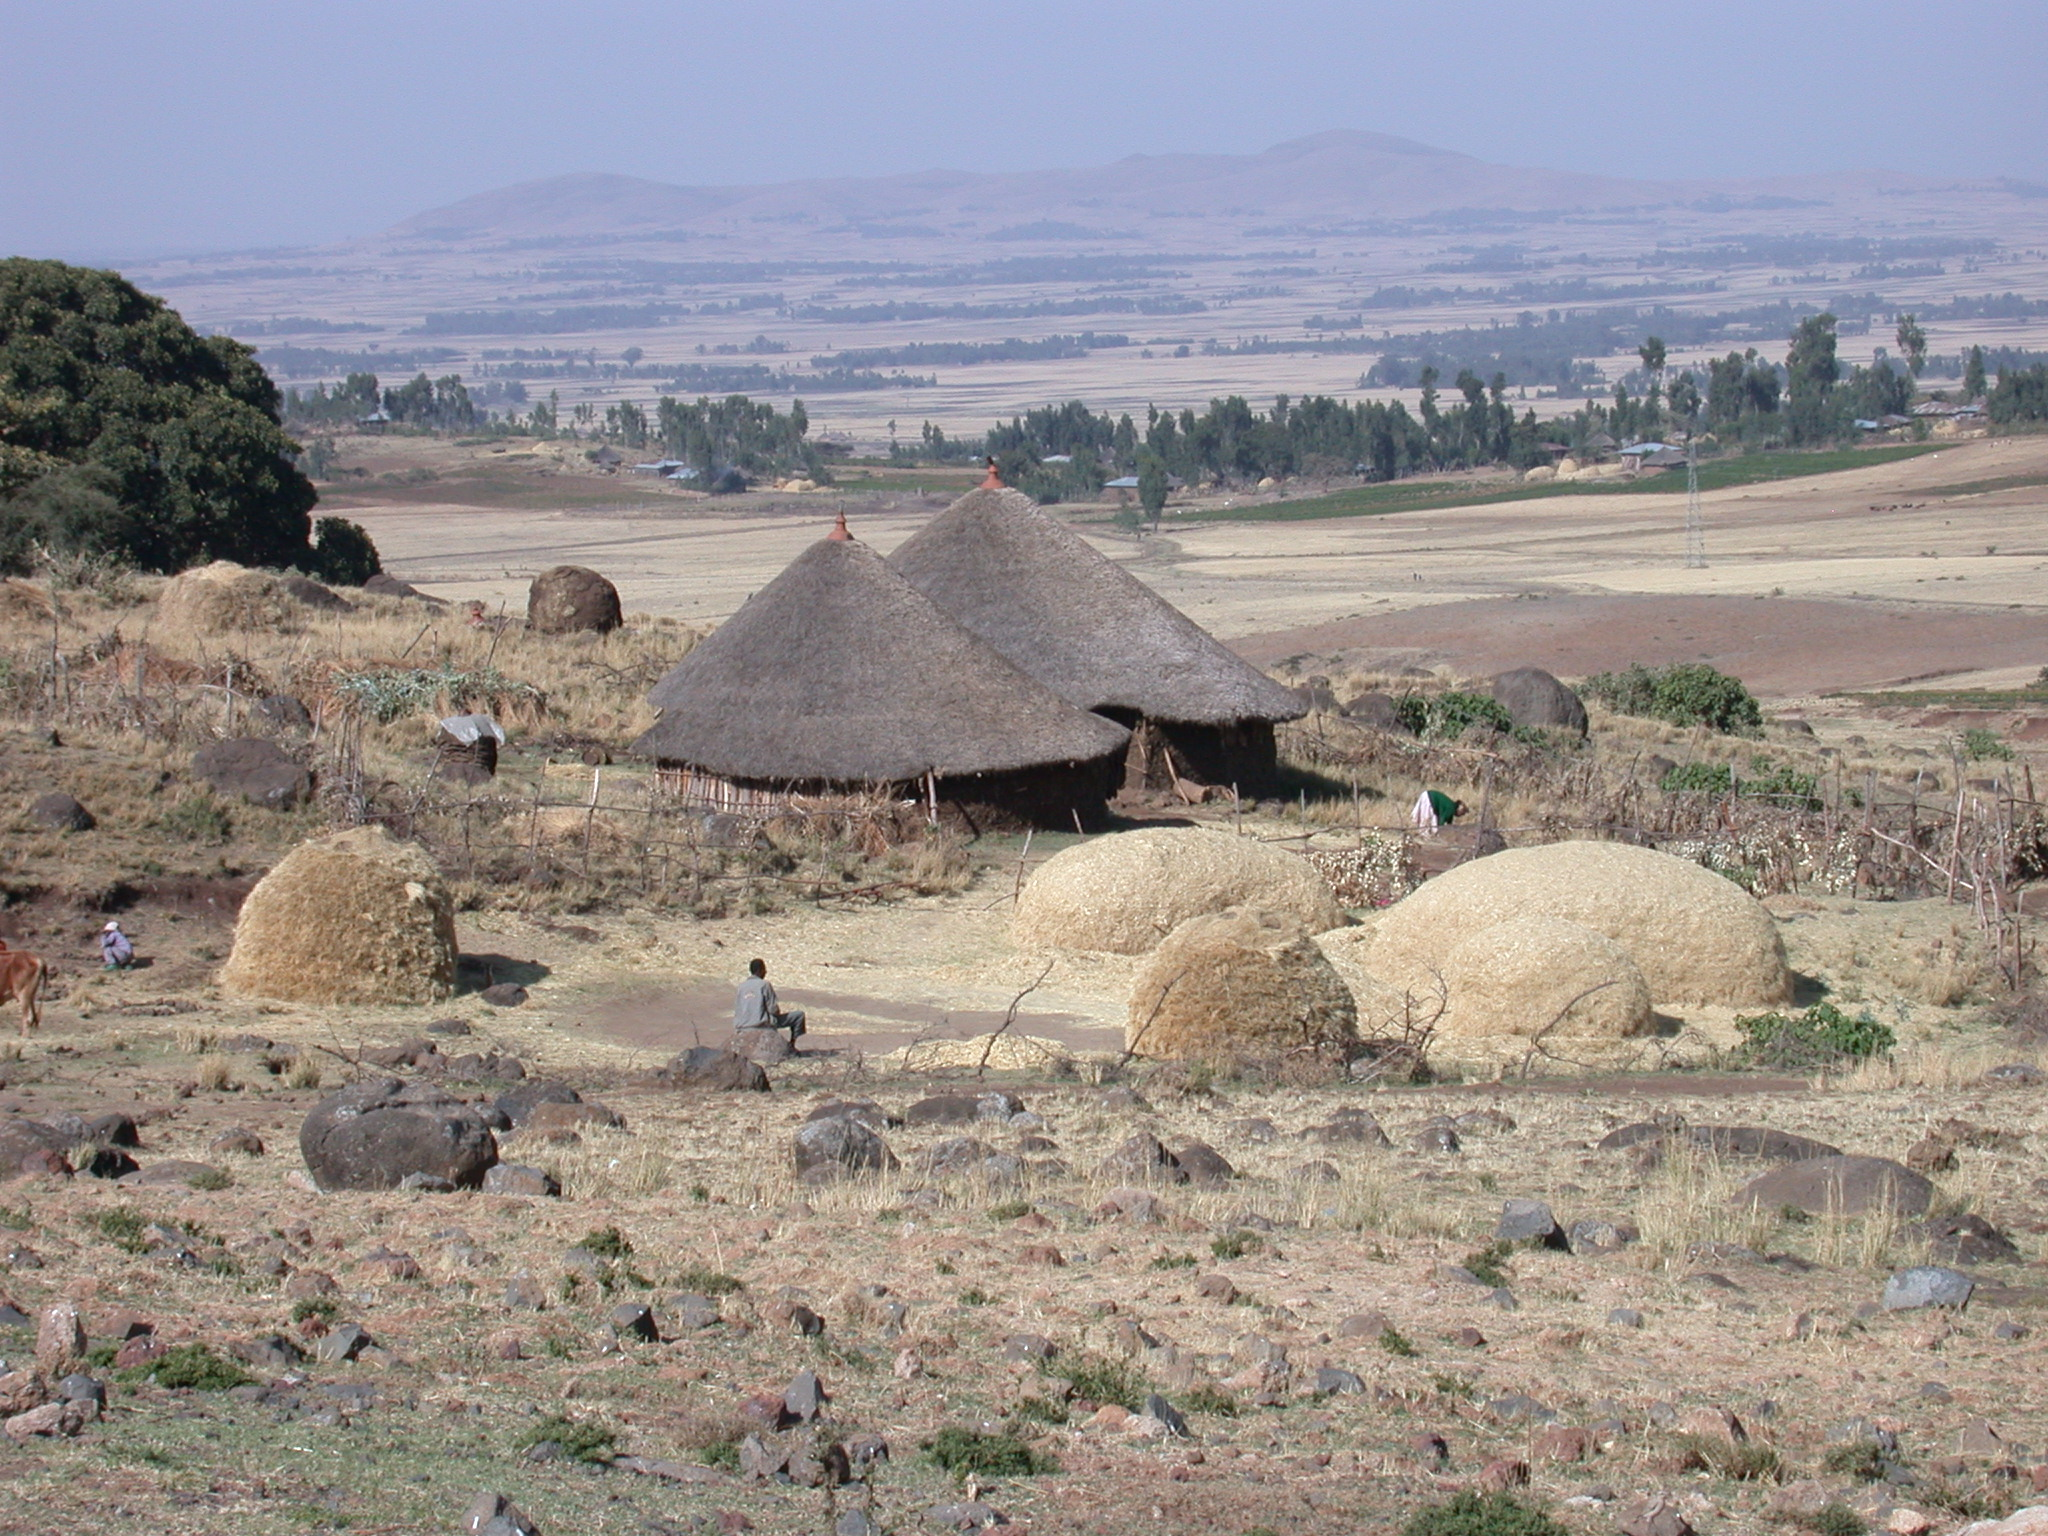 Tukuls and Teff Mounds, Countryside Between Addis Ababa and Melka Kunture, Ethiopia